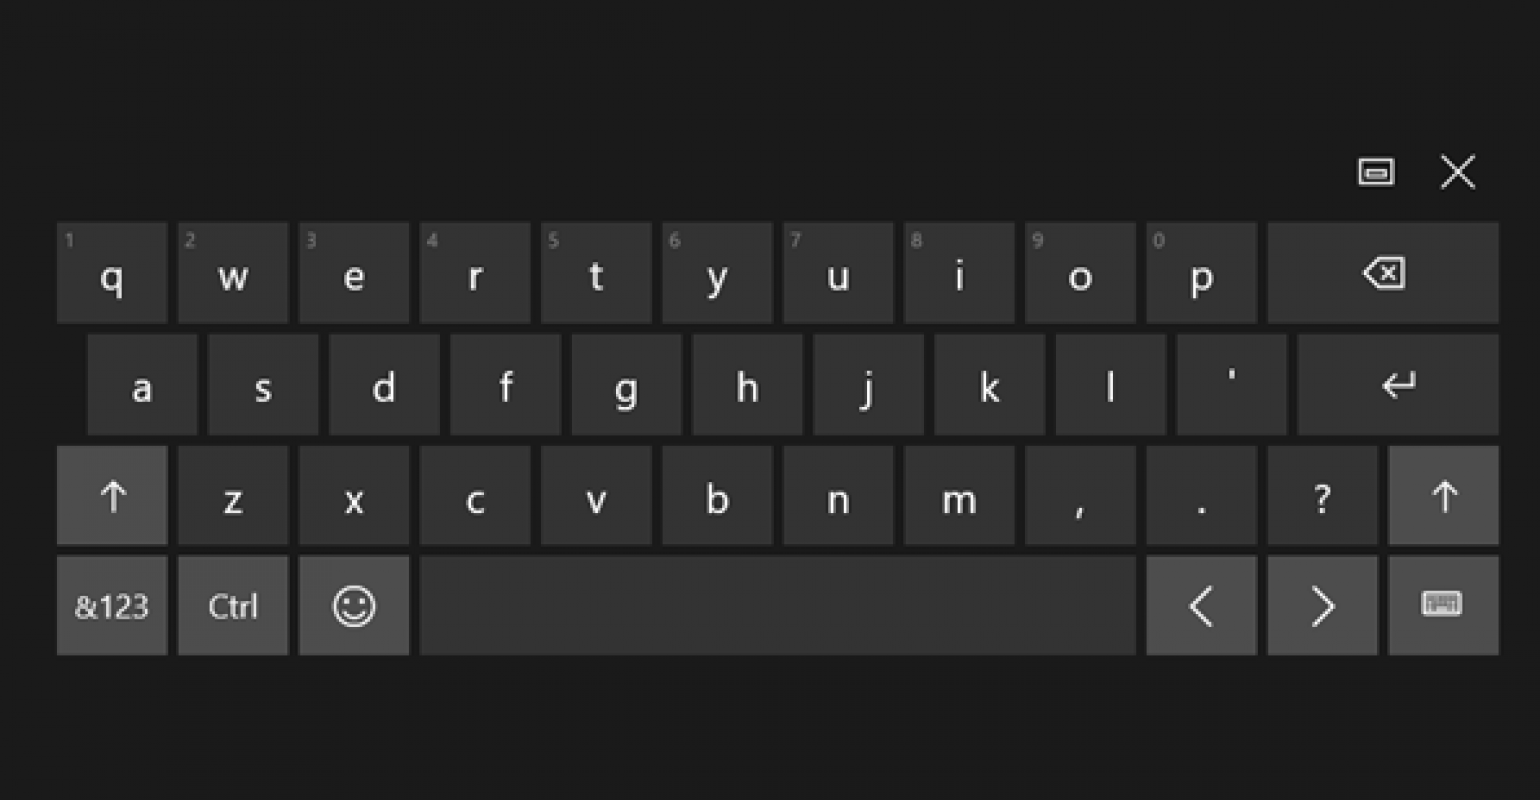 How To: Improve Windows 10's Onscreen Keyboard for Desktop